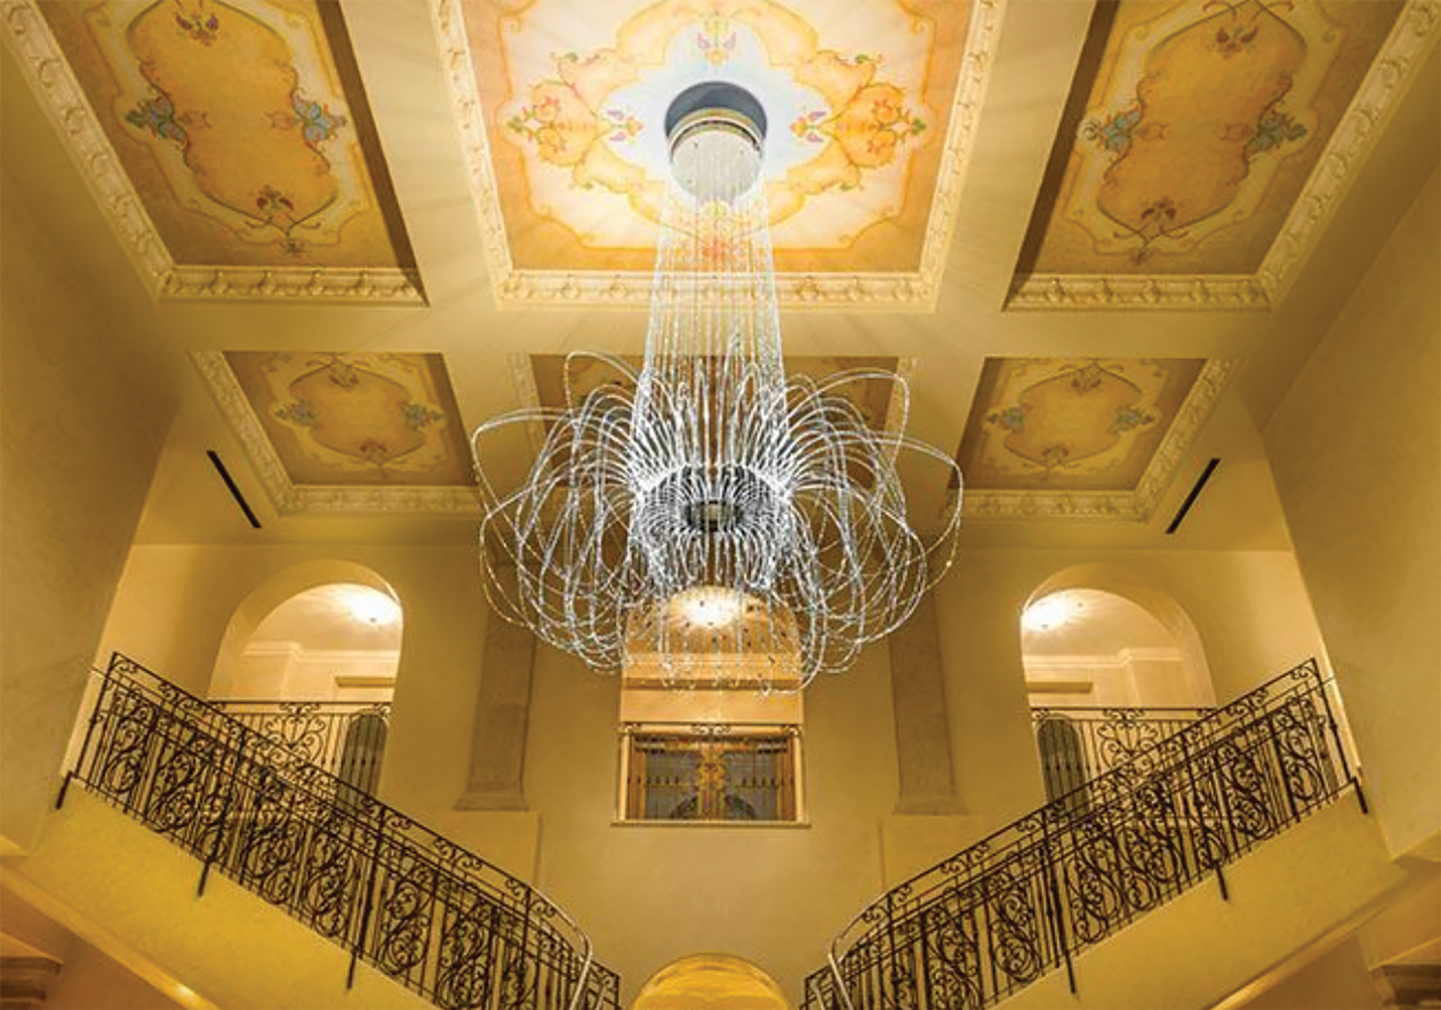 chandelier-entrance-aleggretta